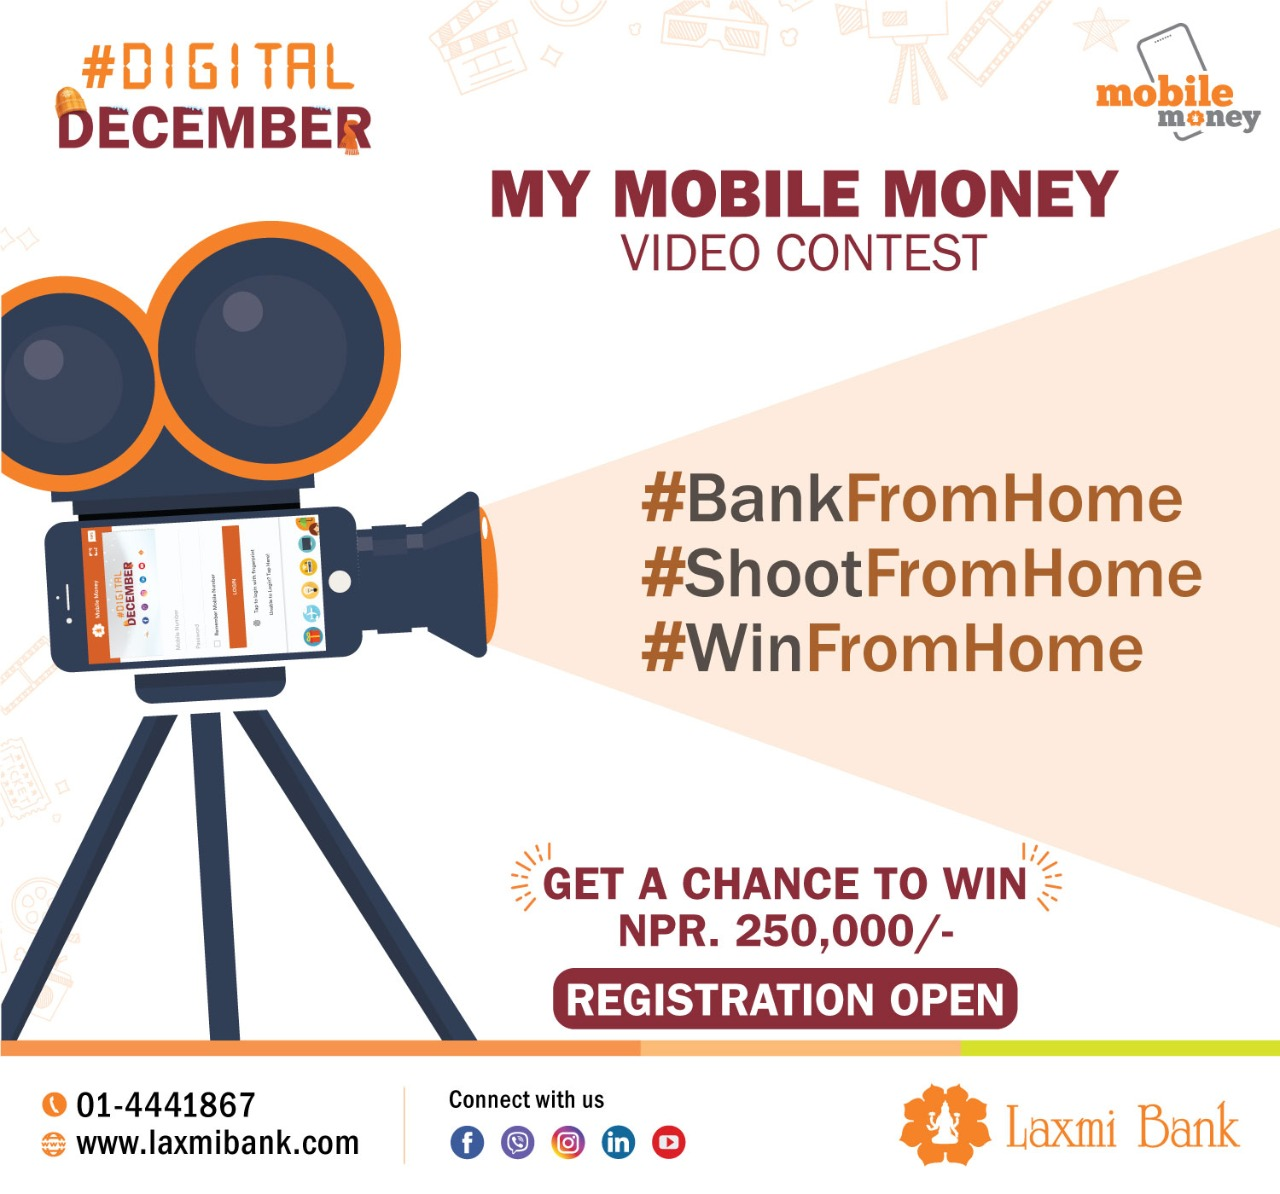 'My Mobile Money' video contest is open for registration!!!